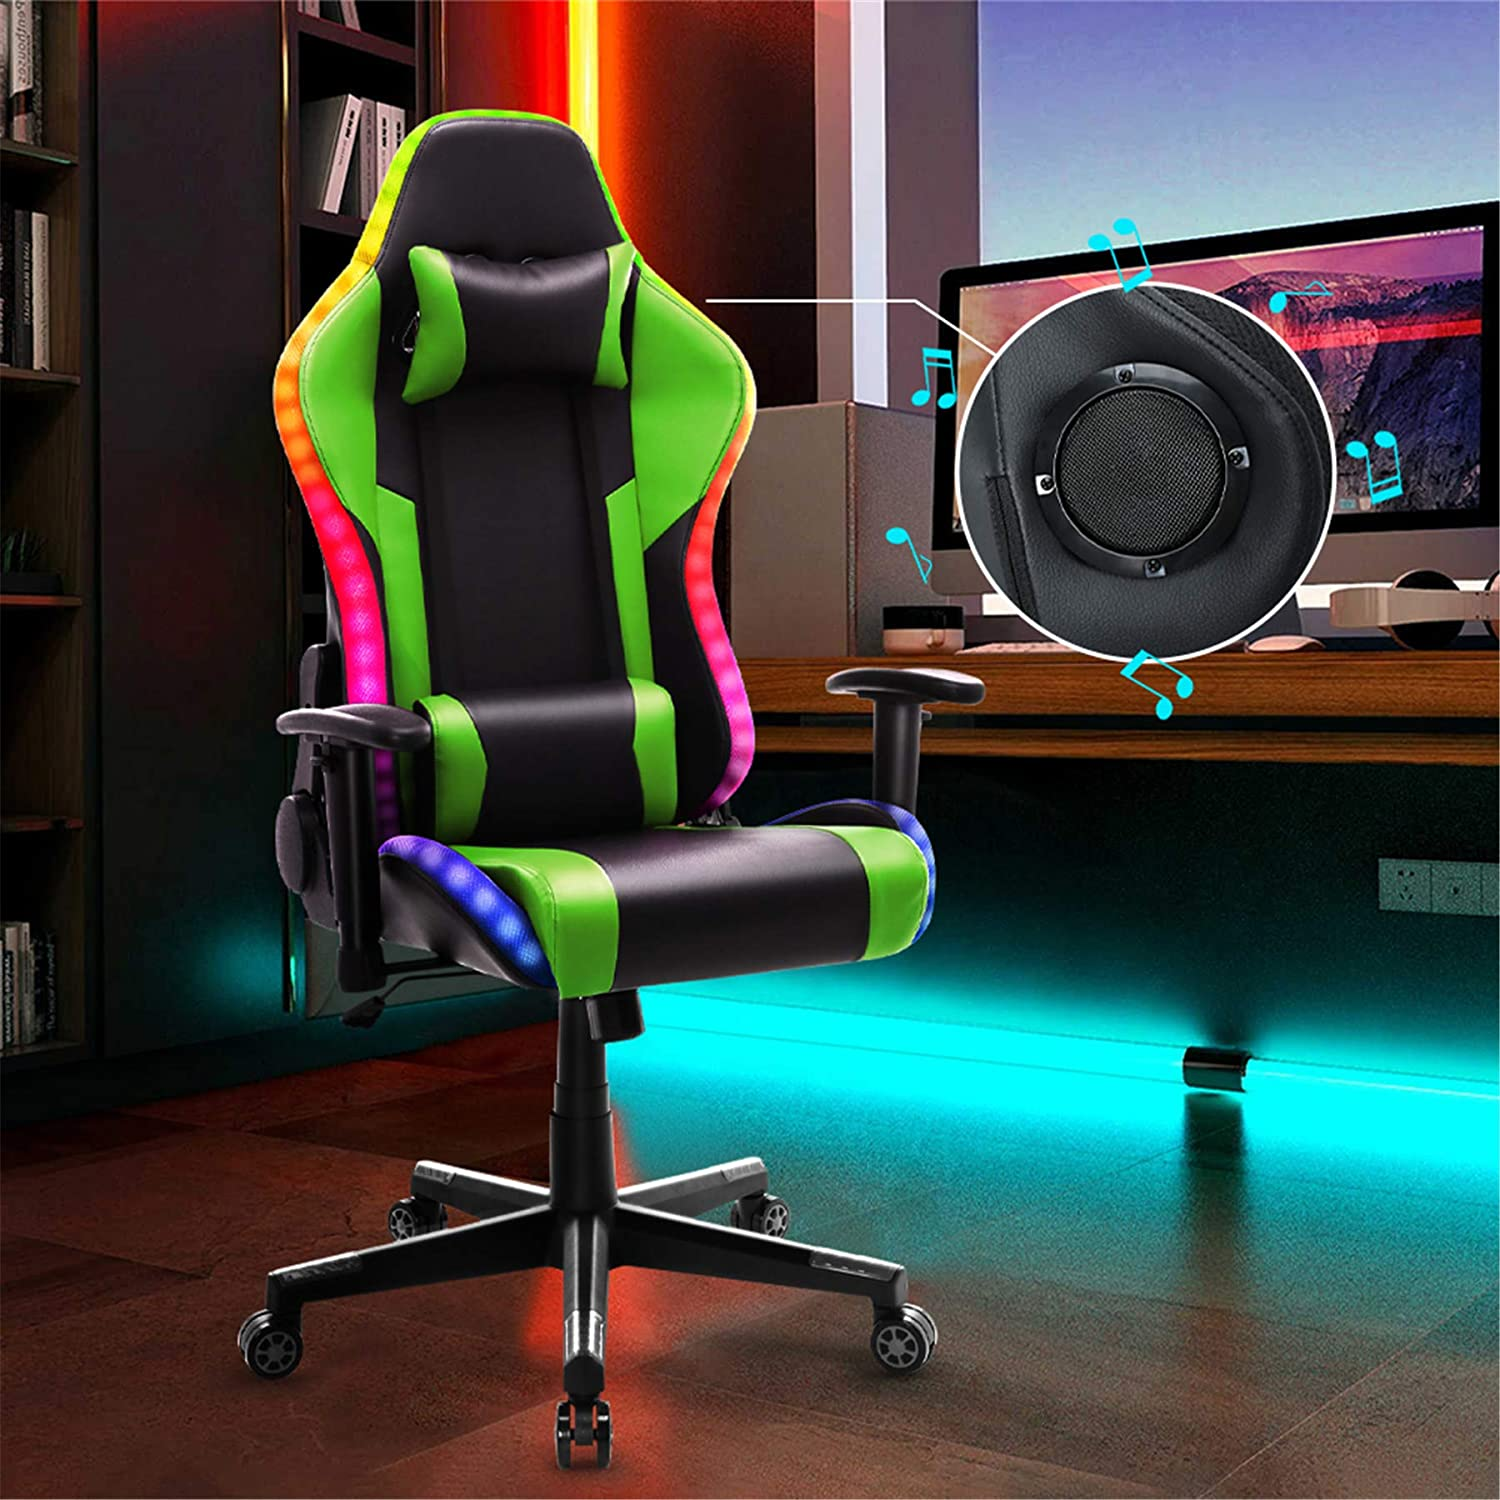 Gaming Chair with 大注目 Bluetooth Speakers LED RGB Lights 当店限定販売 Video Music